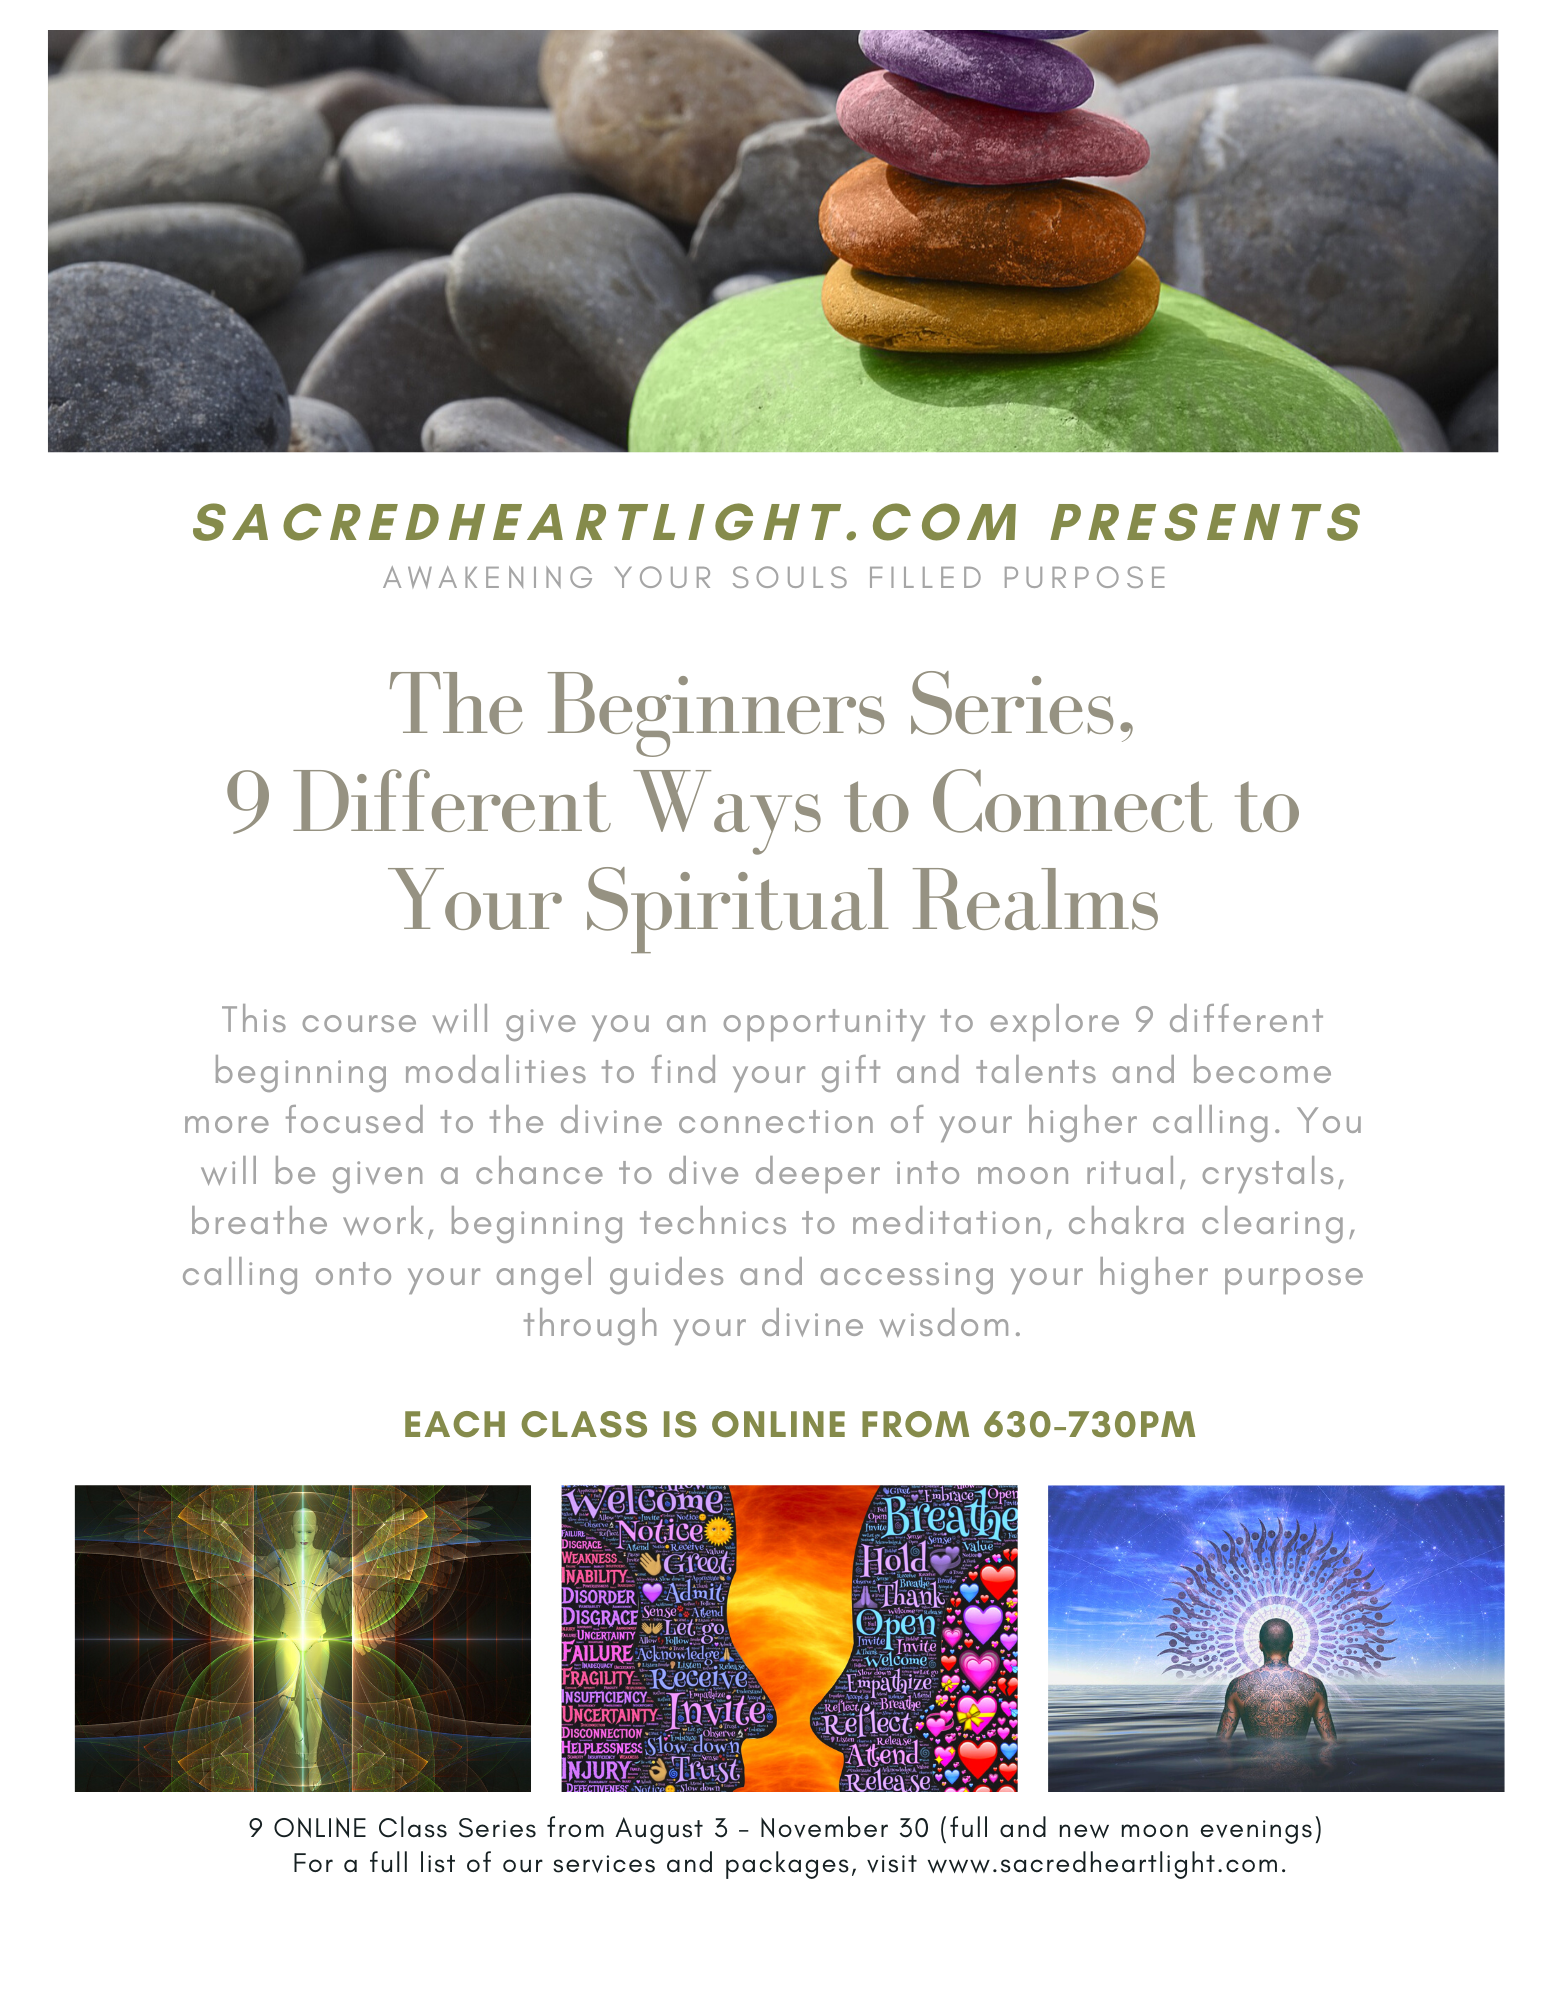 How to align and clear your CHAKRA system?  The Beginners Series - 9 Different Ways to Connect to Your Spiritual Realms   Class #8 of 9,